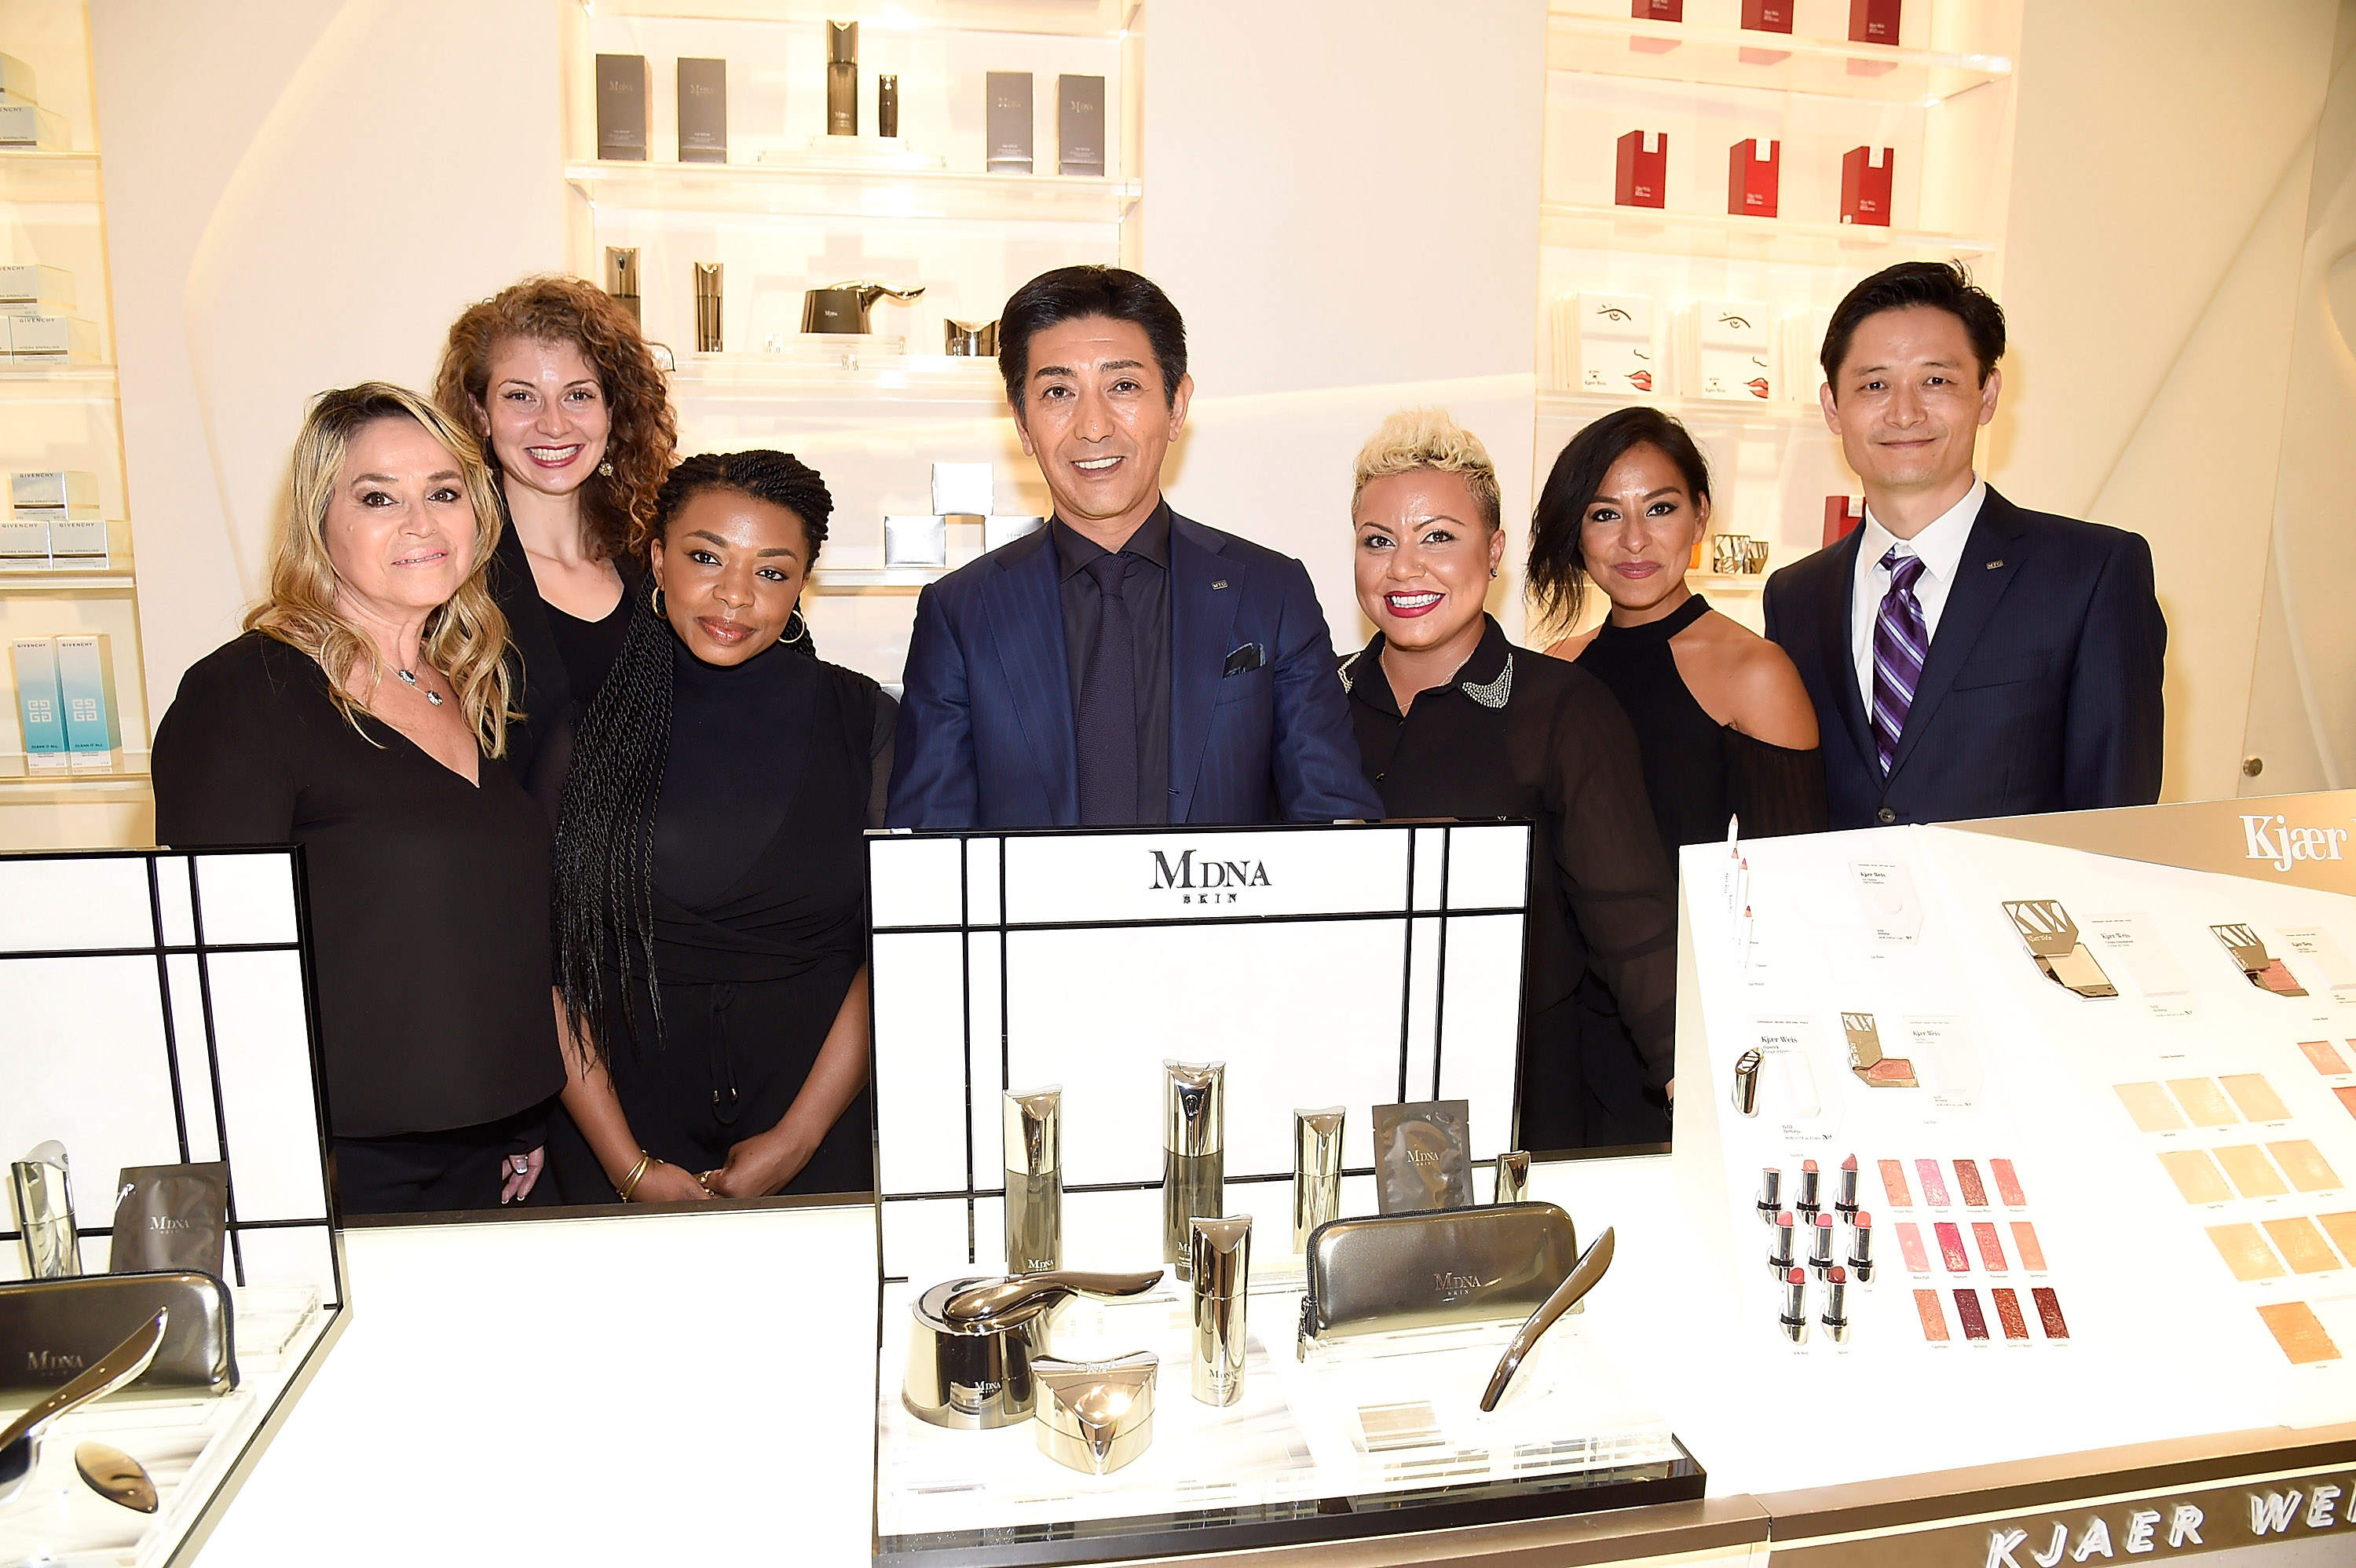 NEW YORK, NY - SEPTEMBER 26:   Tsuyoshi Matsushita, President of MTG Co., Ltd (C) during the launch of  MDNA SKIN collection at Barneys New York on September 26, 2017 in New York City.  (Photo by Kevin Mazur/Getty Images for MDNA SKIN)